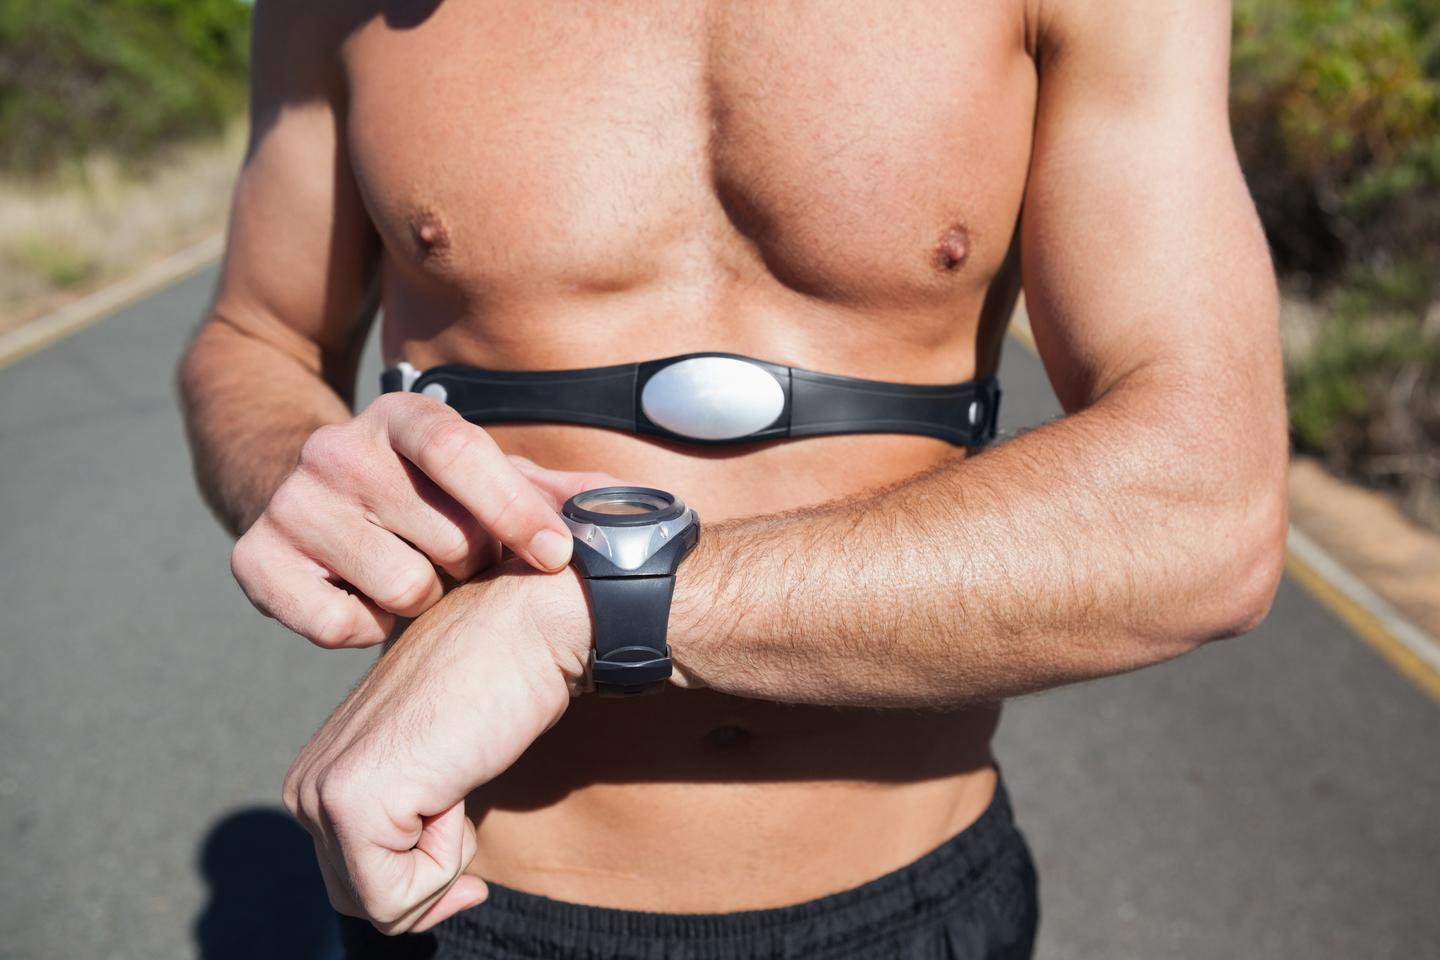 The new technology would make chest straps unnecessary